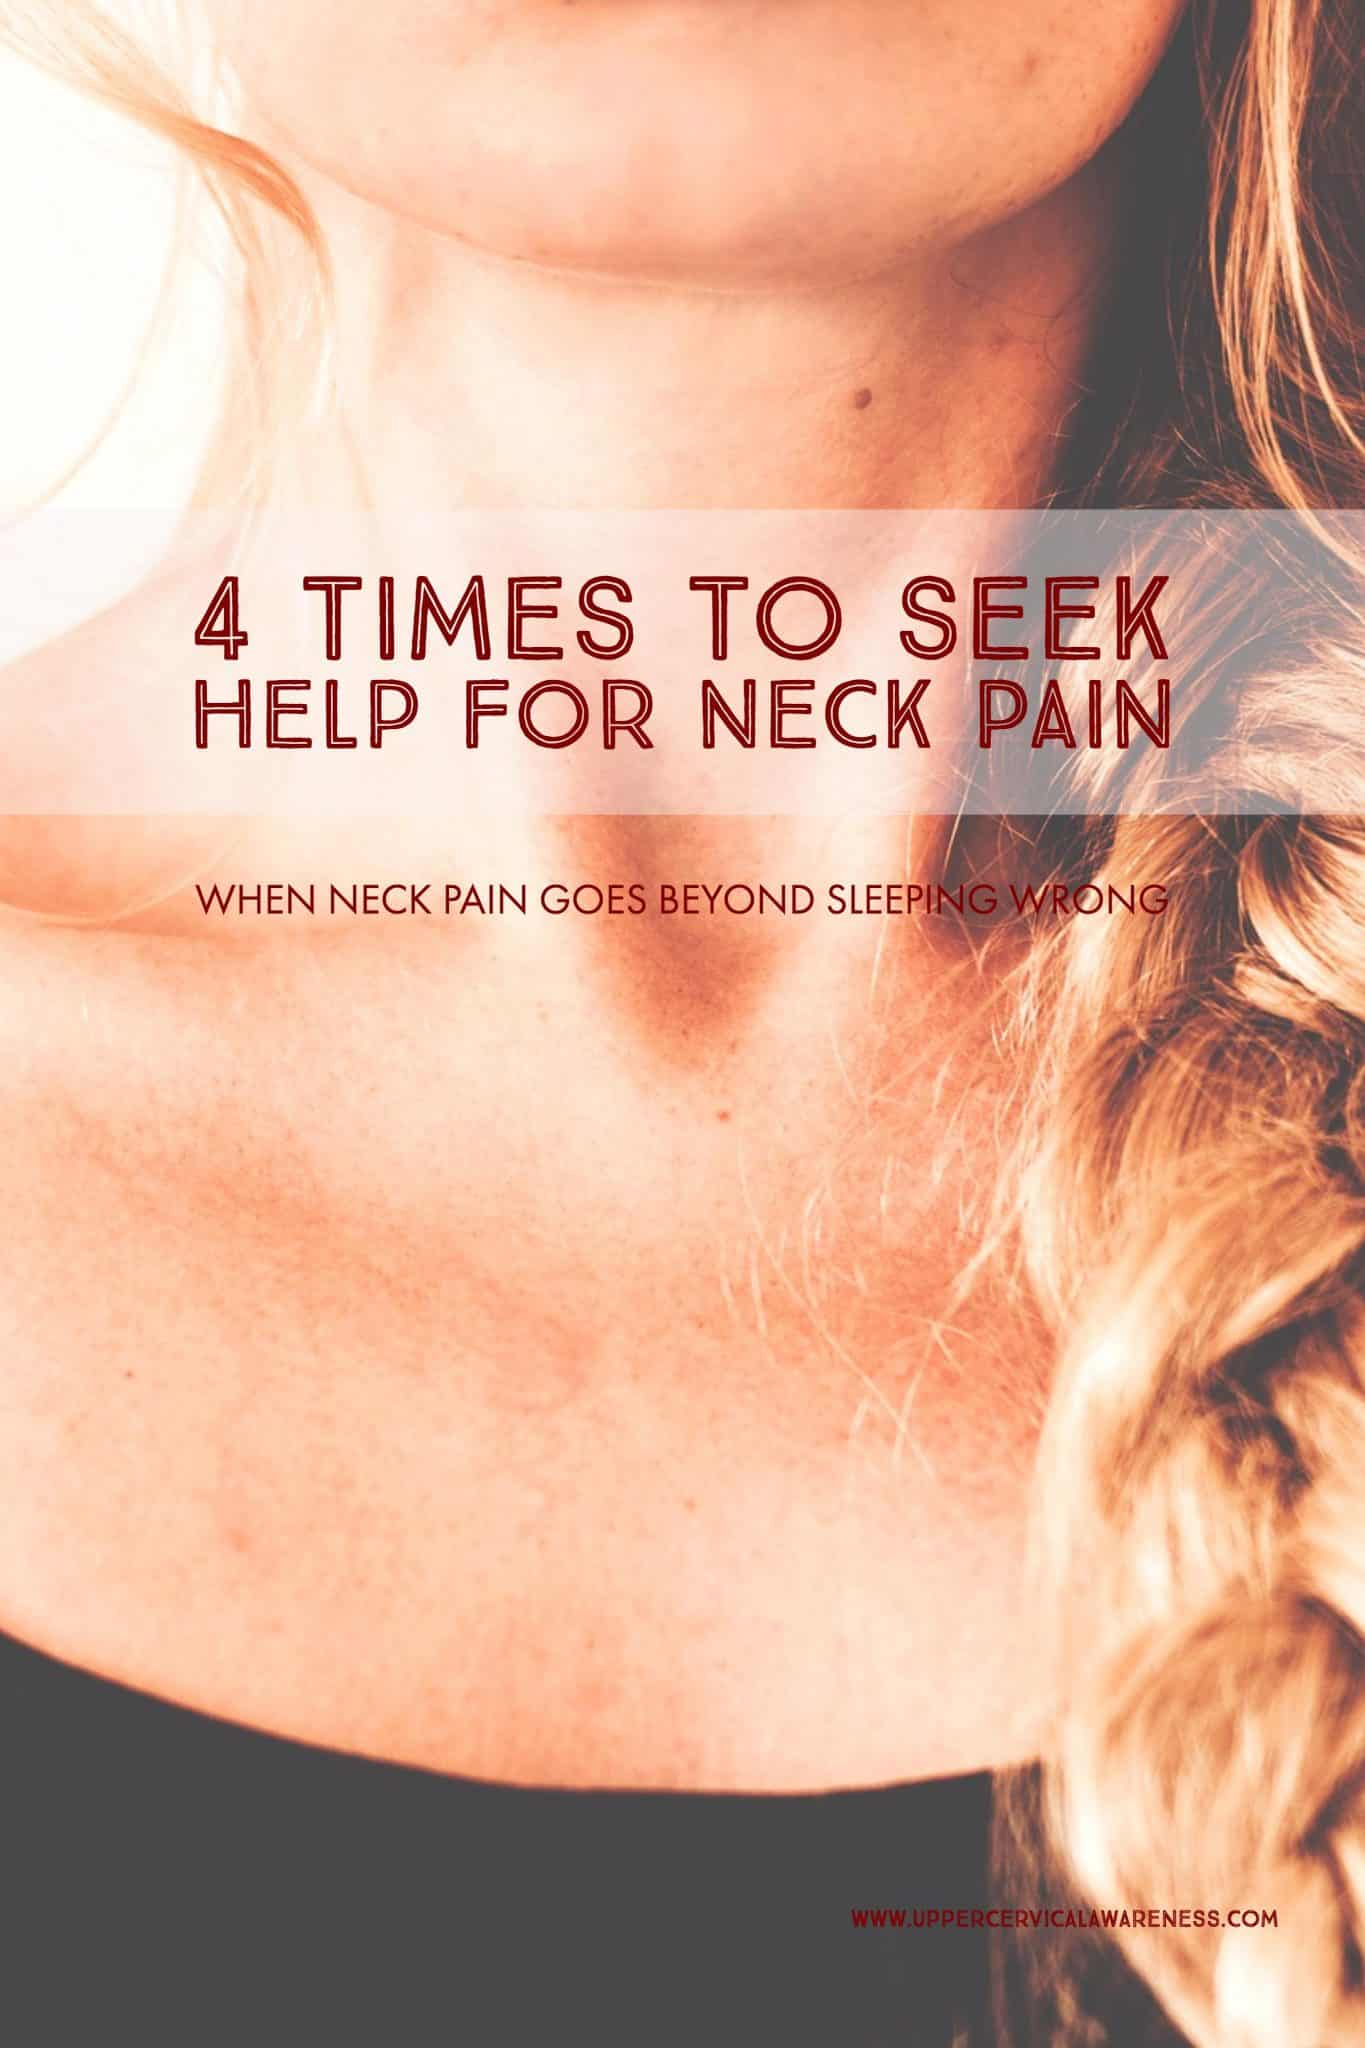 4 times to seek help for neck pain - upper cervical awareness